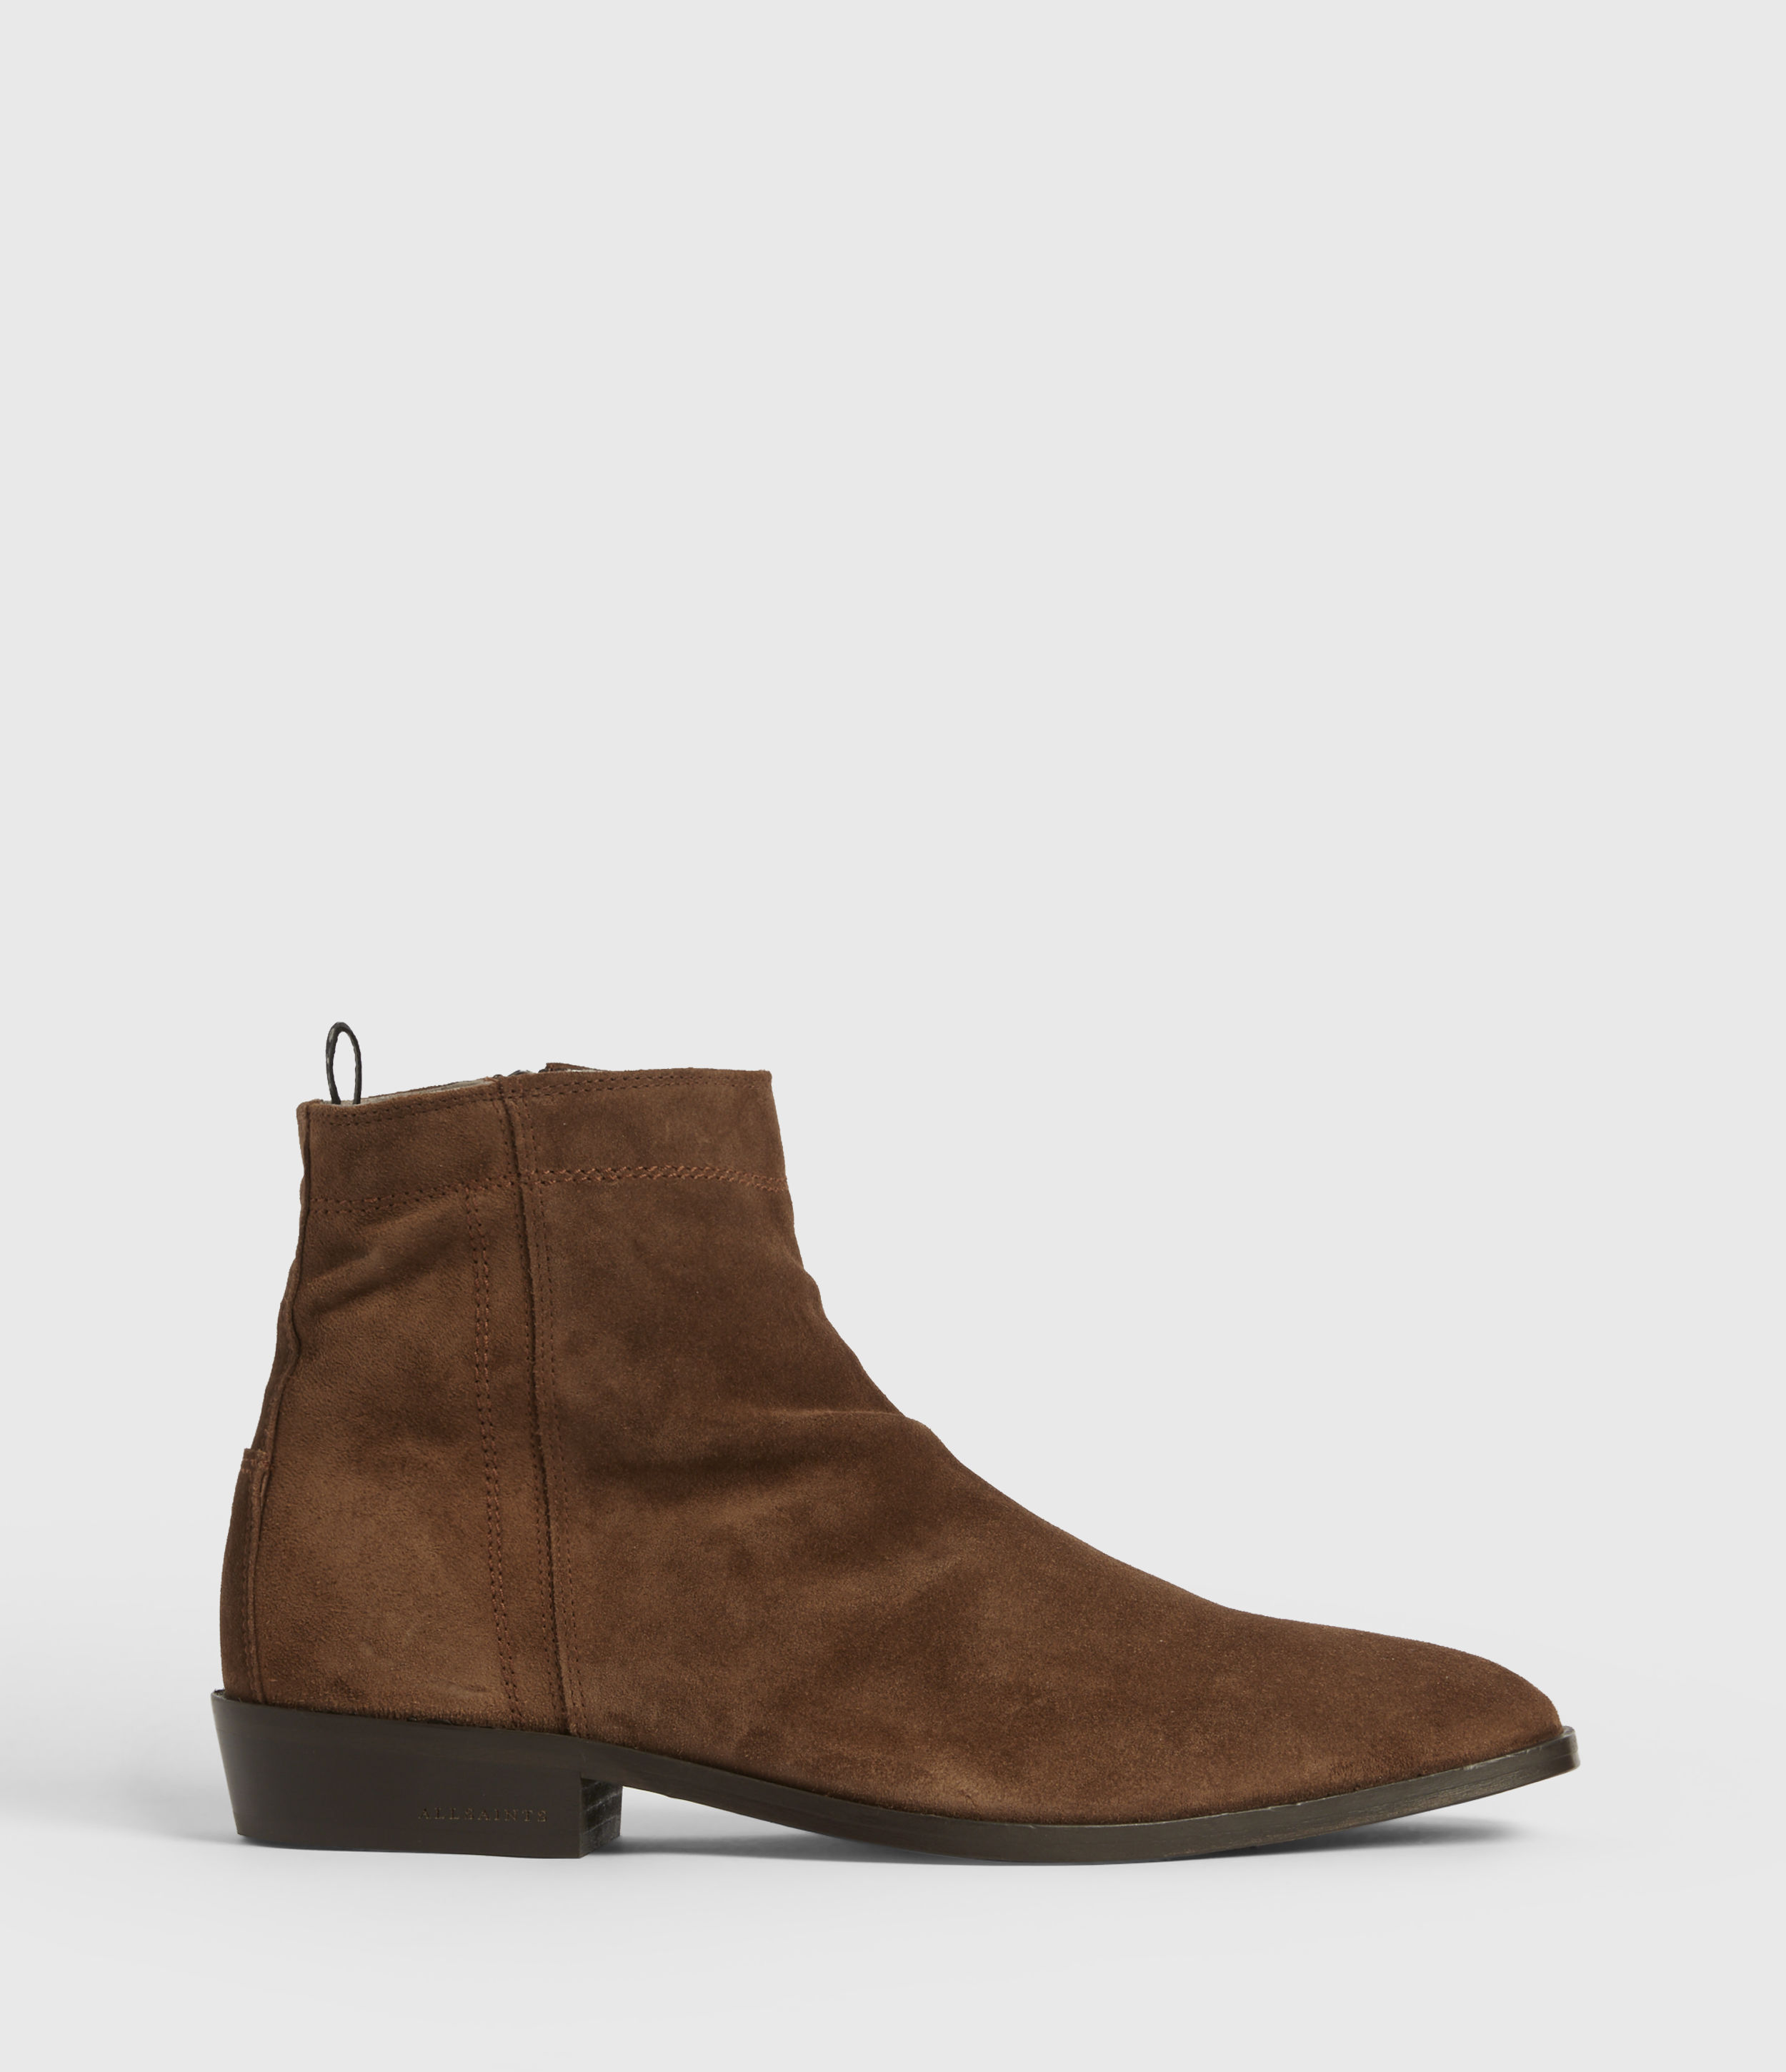 AllSaints Mens Harris Suede Boots, Tobacco Brown, Size: UK 9/US 10/EU 43